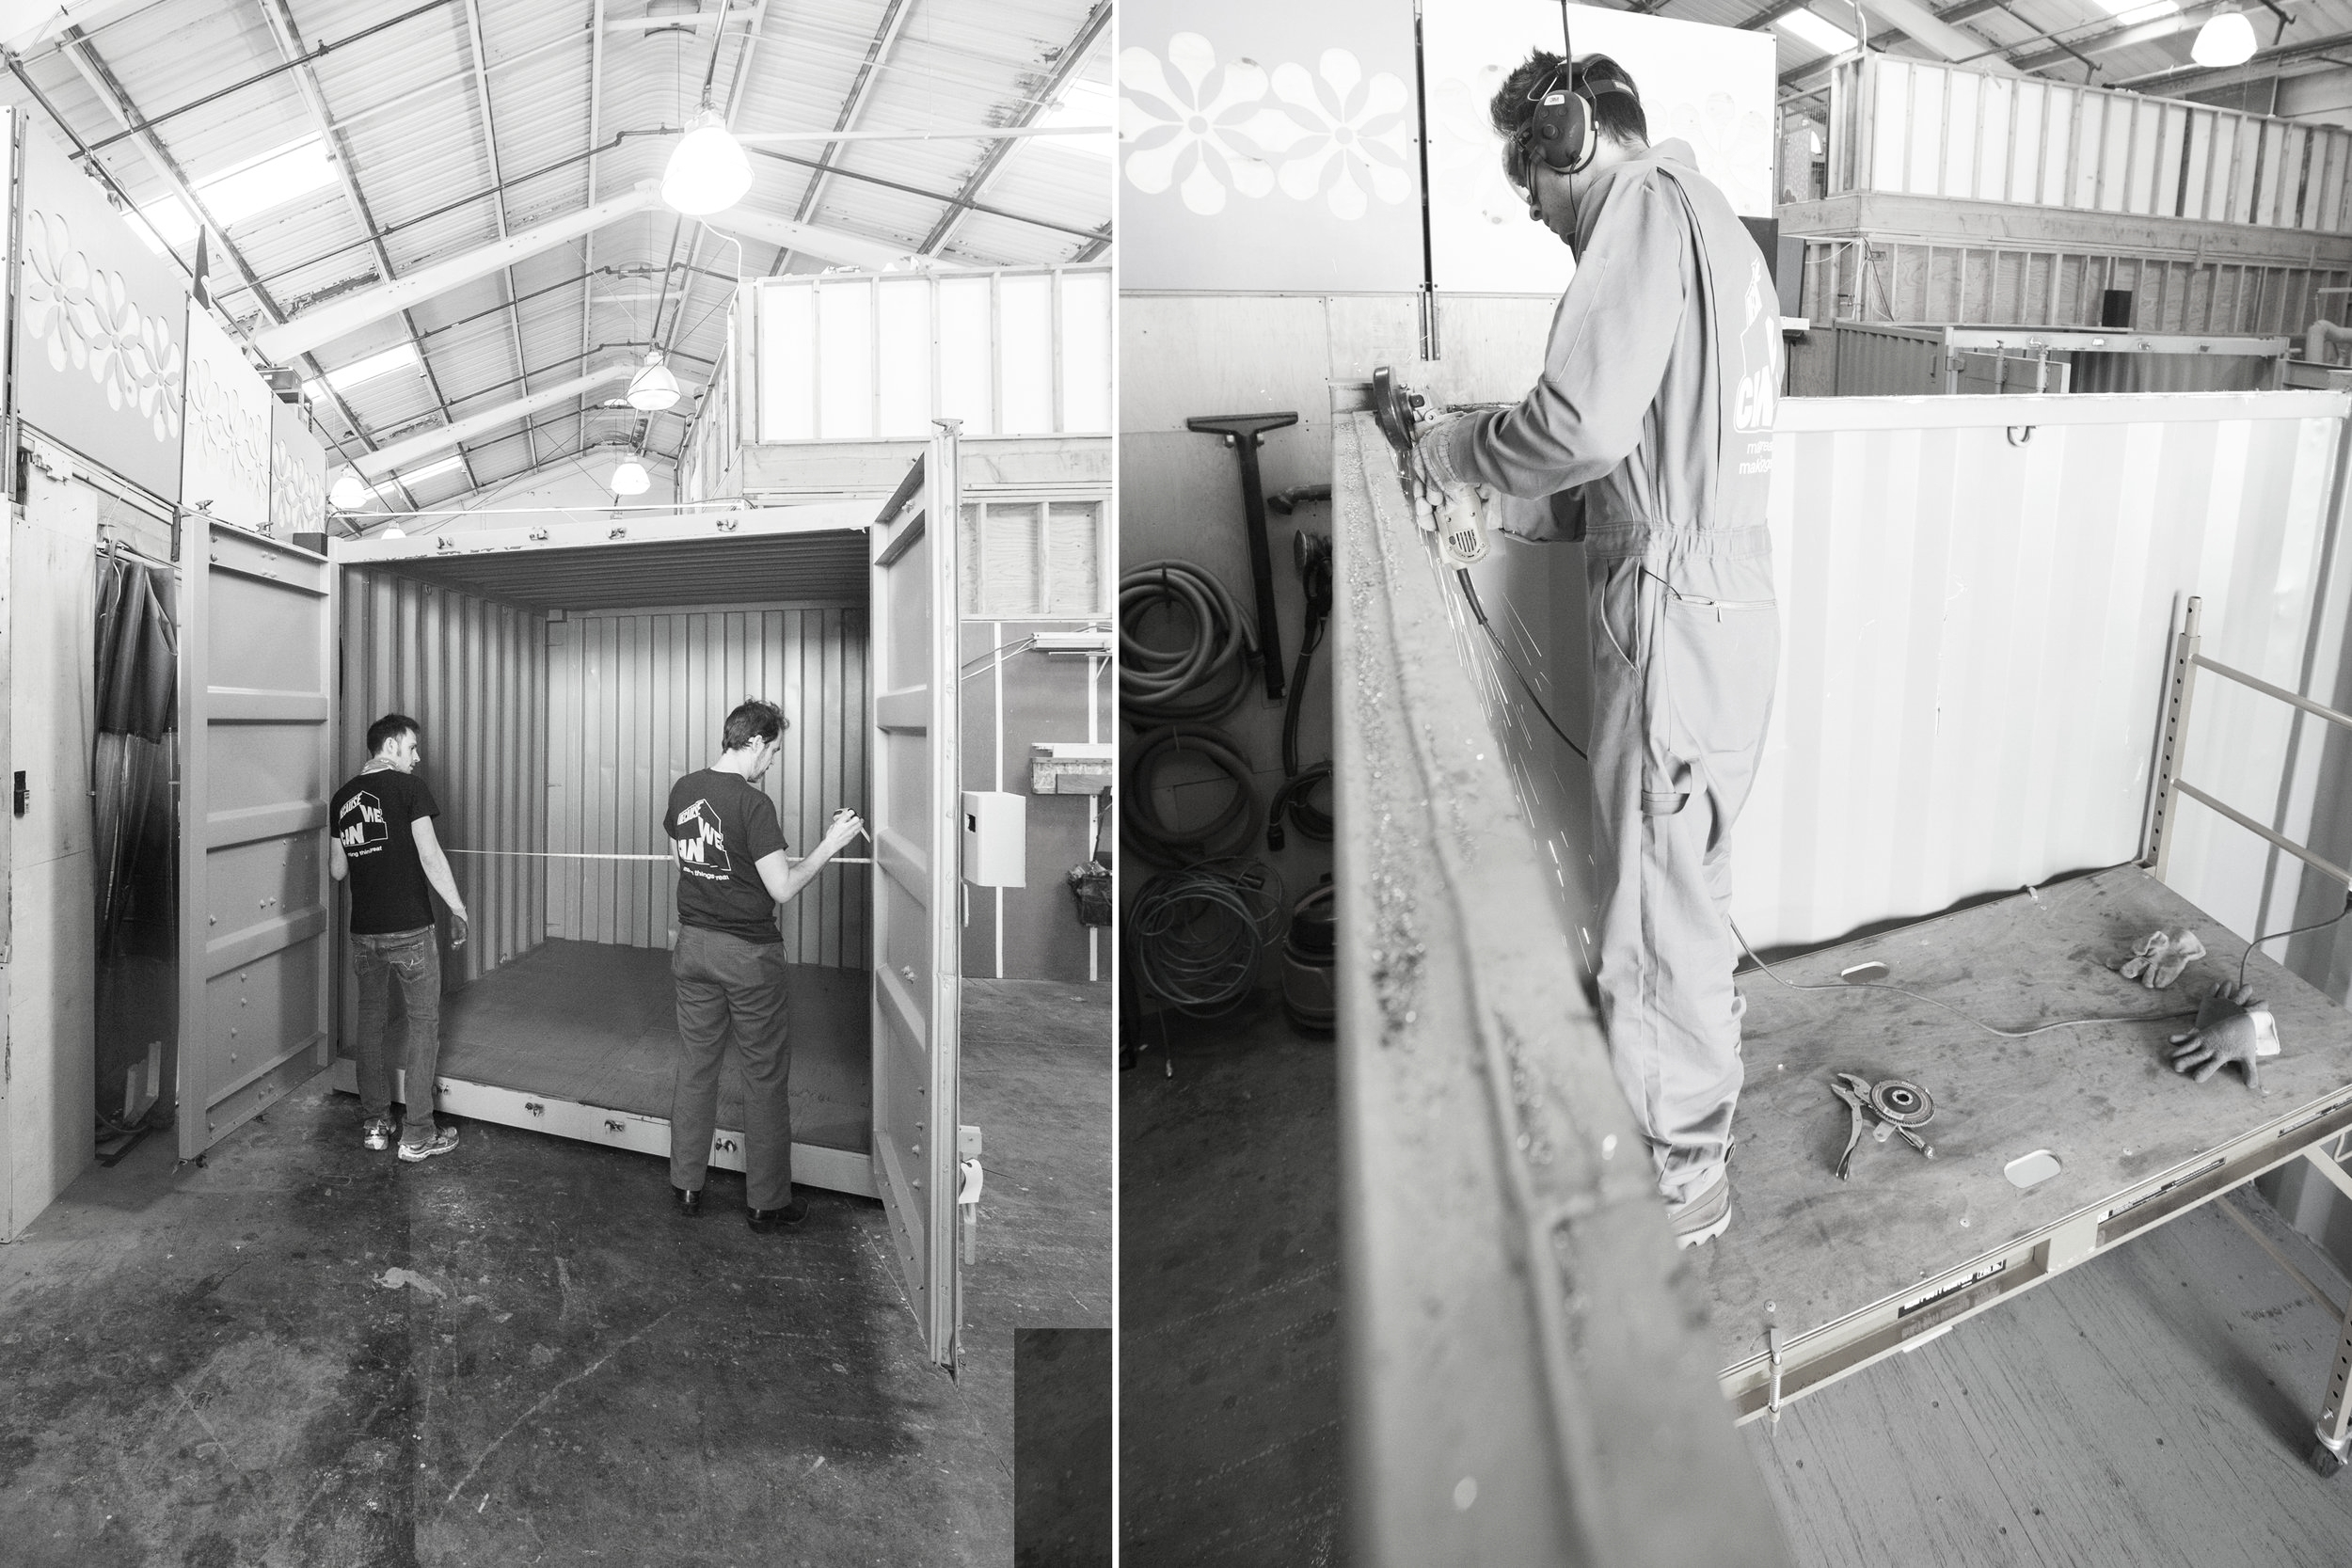 Once we received the containers at our fabrication shop, detail measurements were taken and the modifications began.